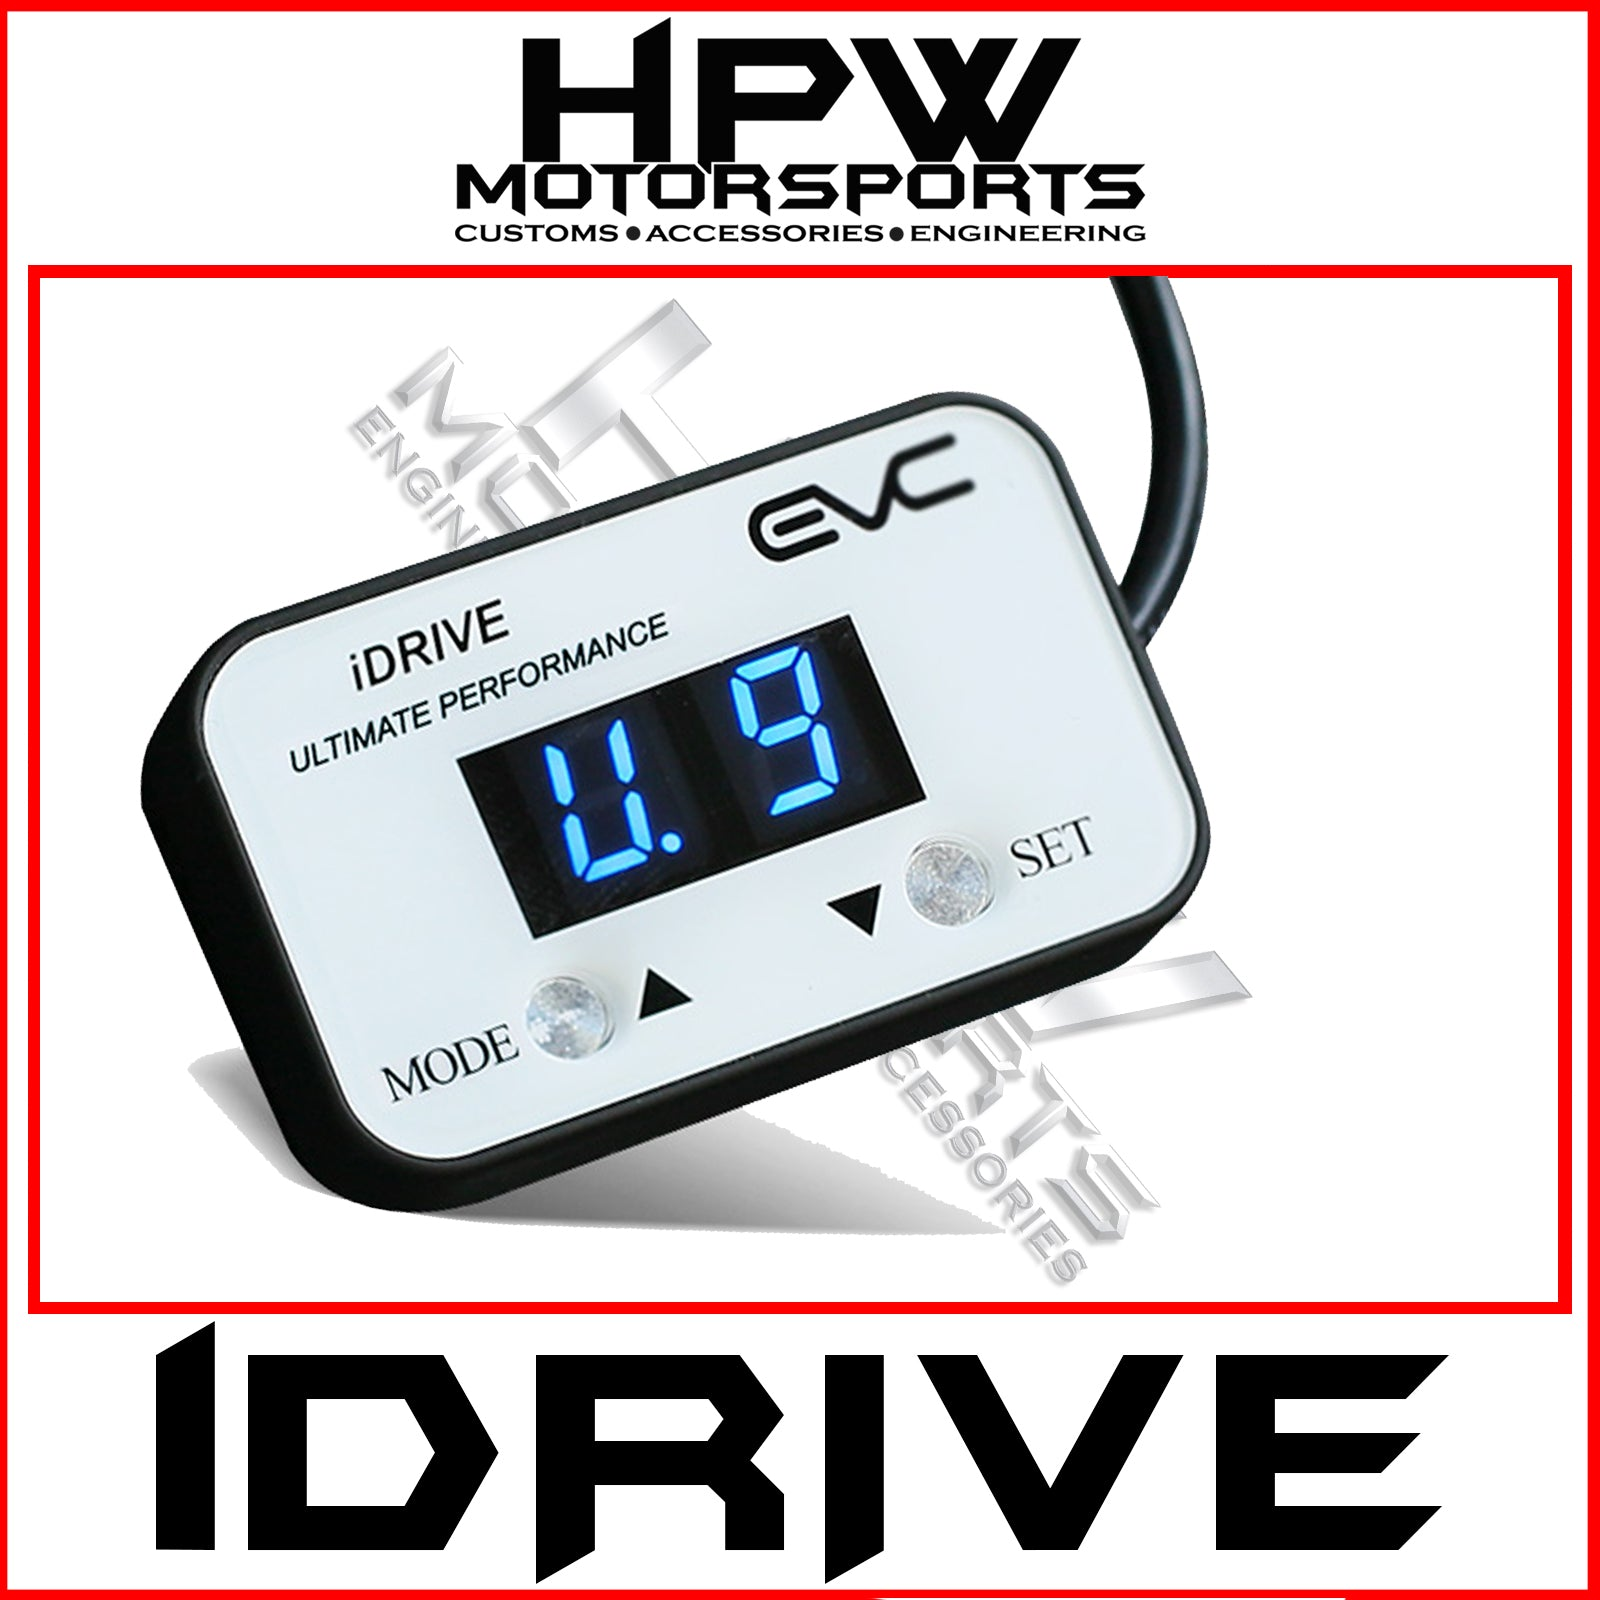 iDrive windbooster throttle controller - Unleash the power!